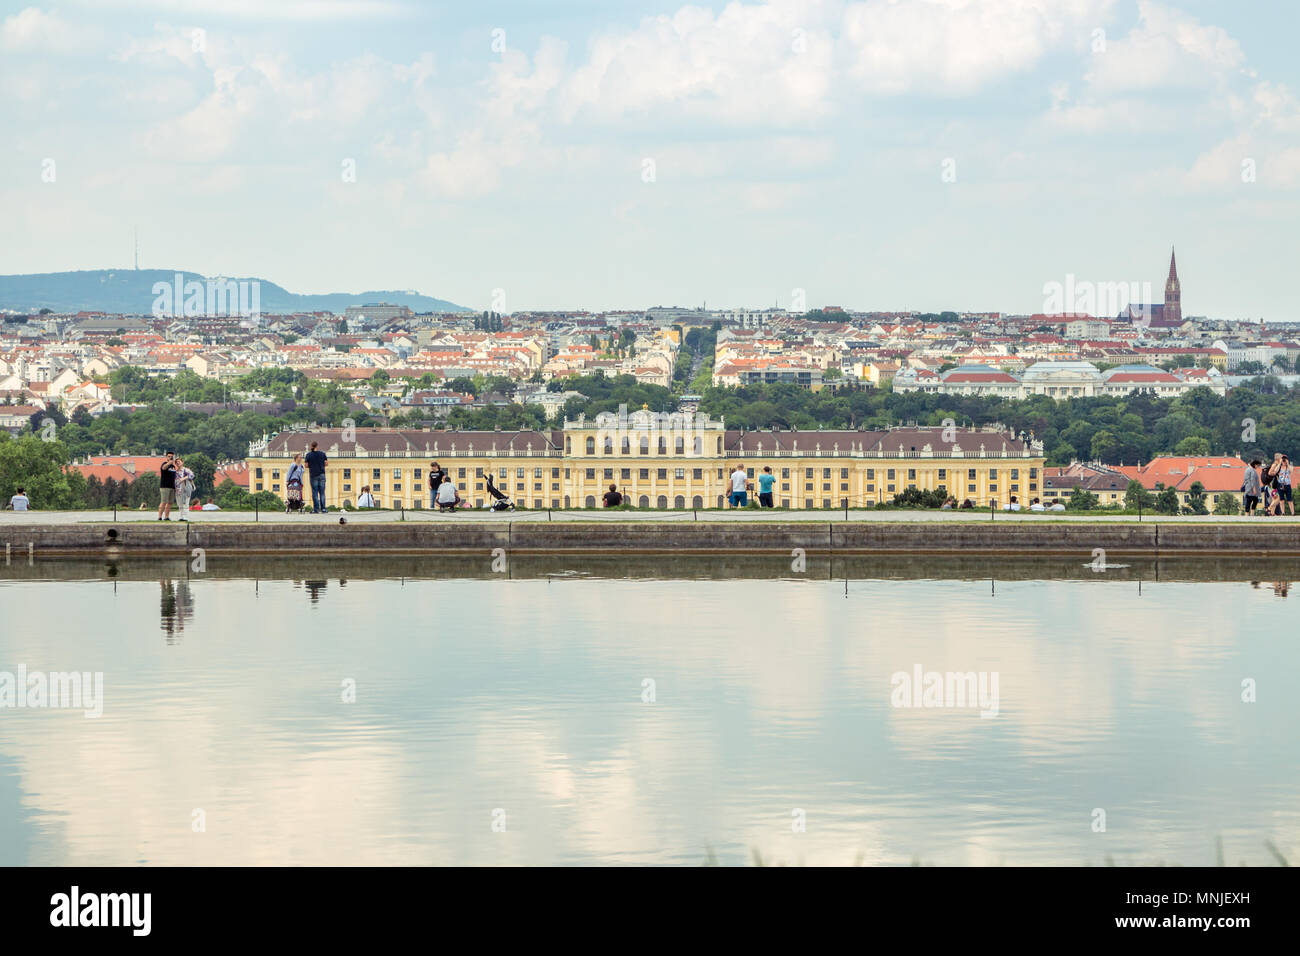 Vienna Austria May.10 2018, Schonbrunn castle view from Gloriette at low with the pond reflecting the sky against cityscape - Stock Image